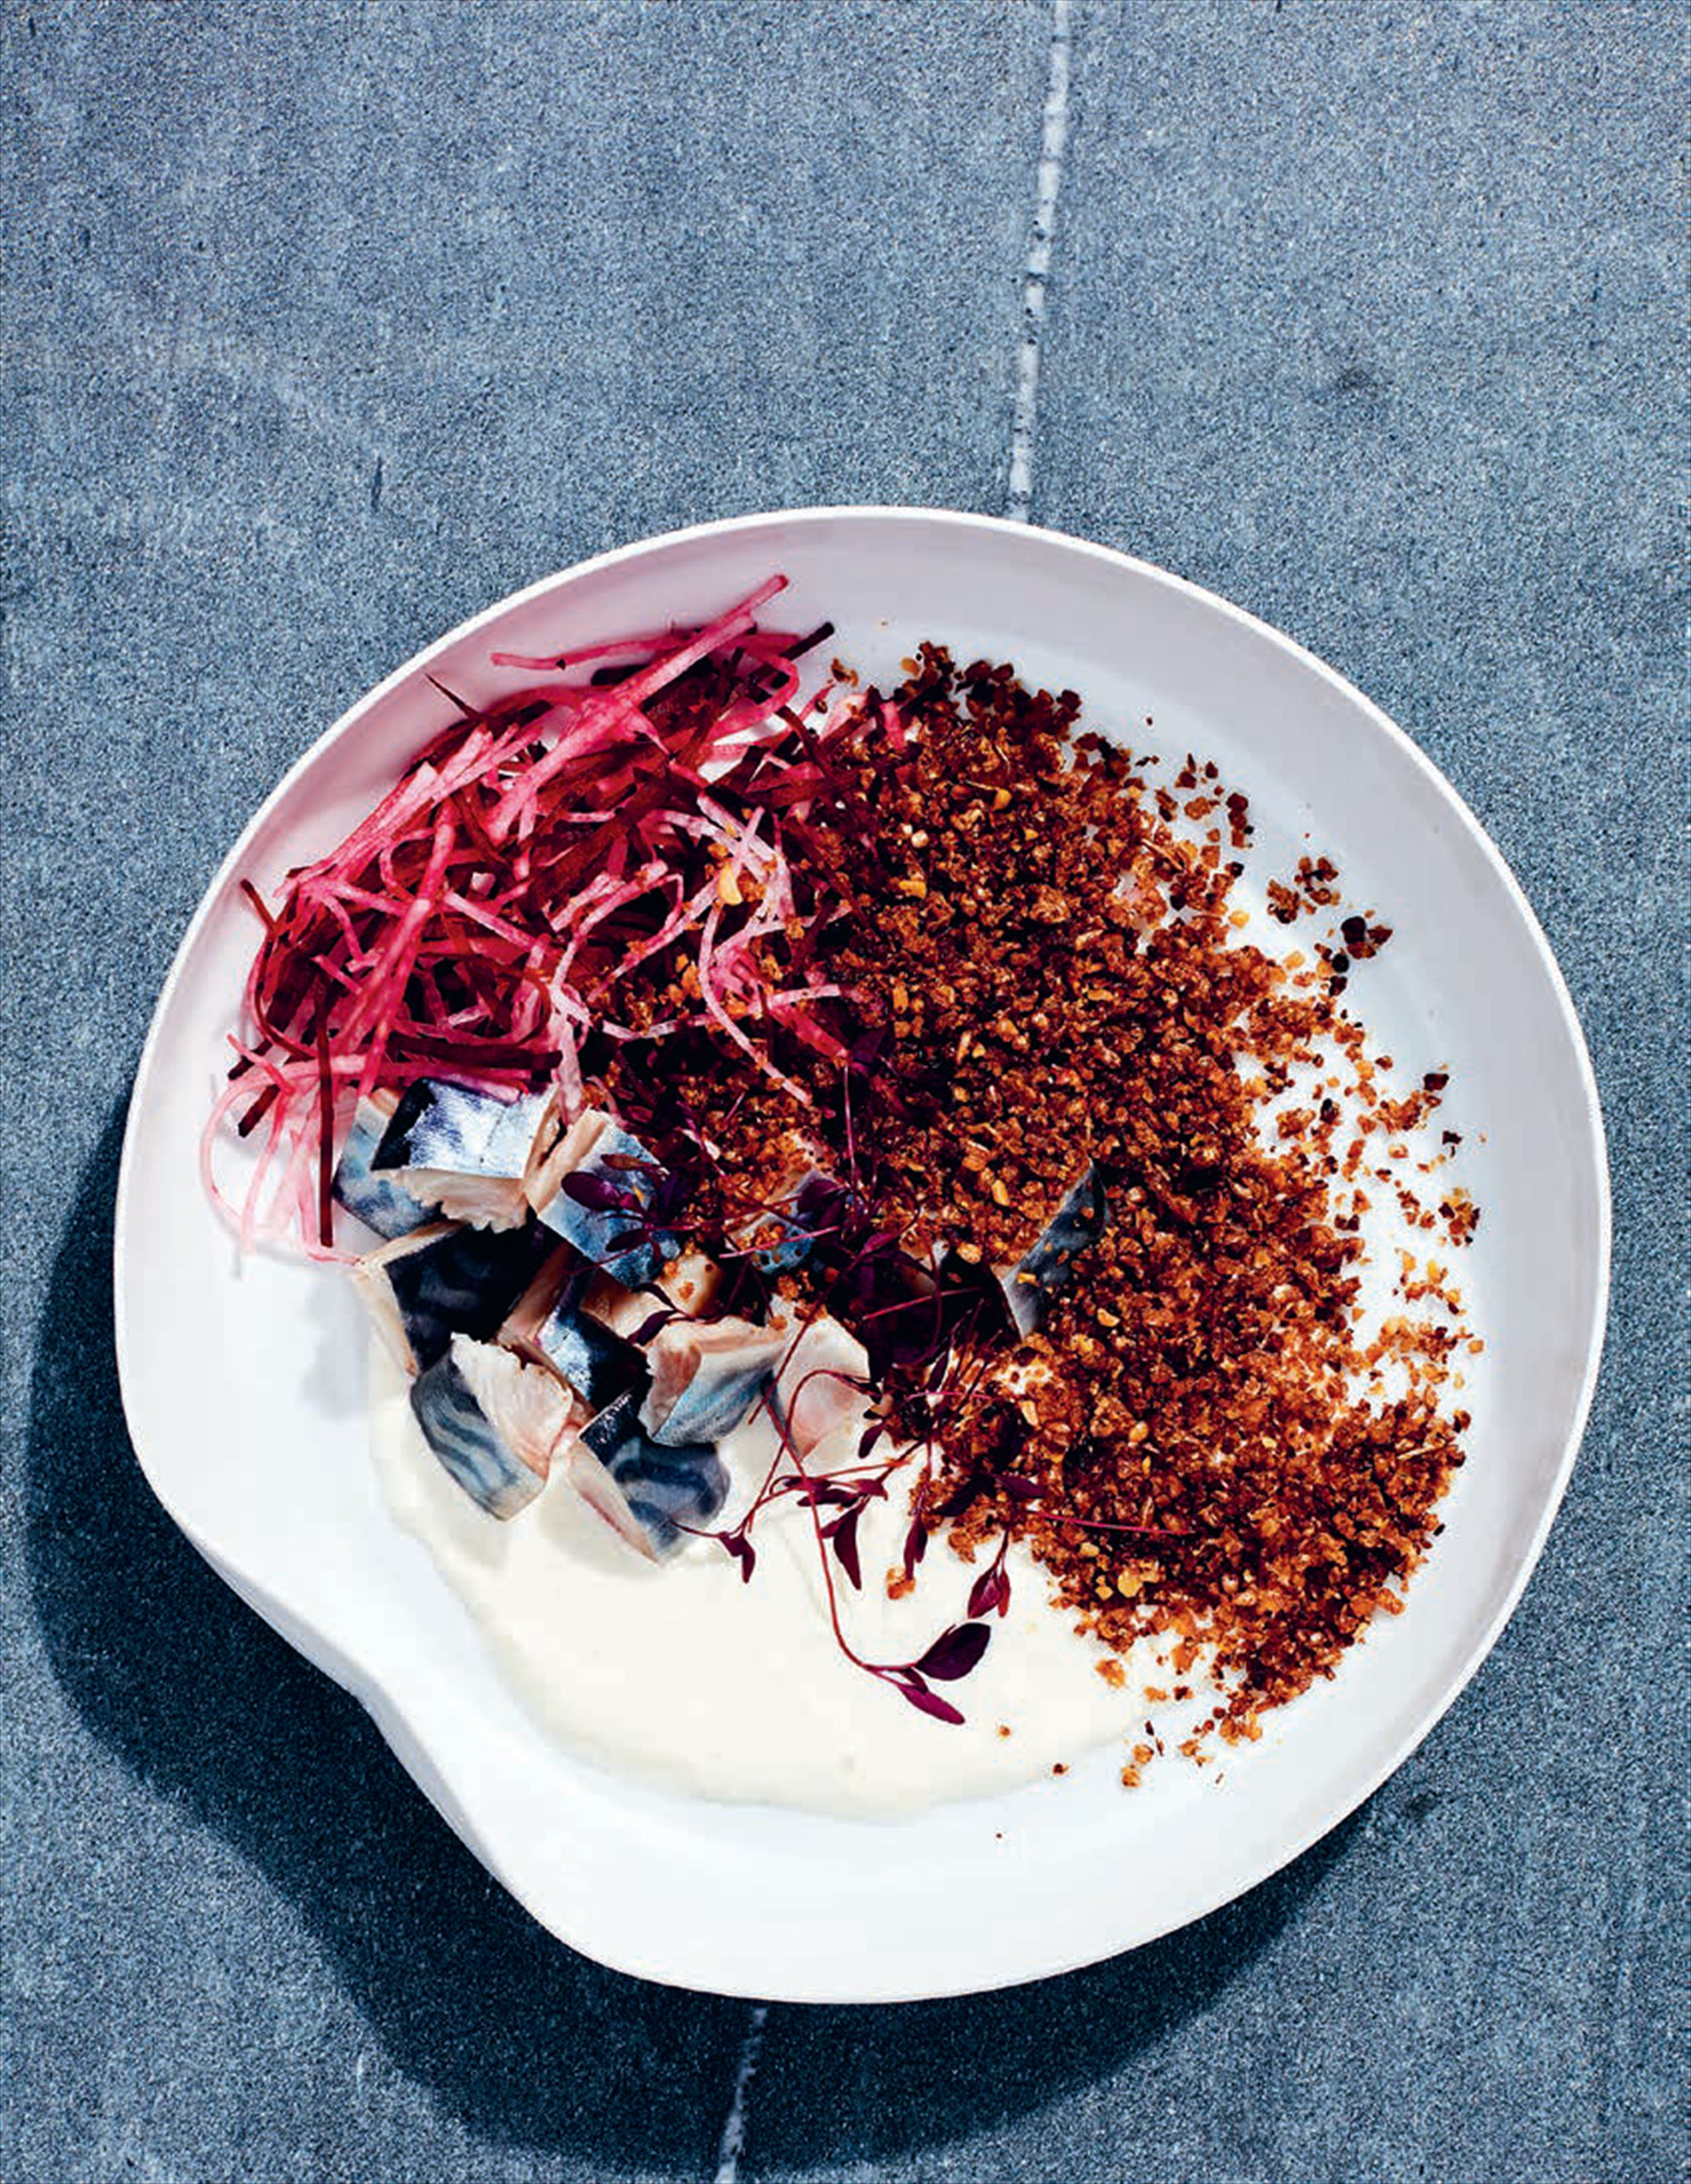 Pickled mackerel, mooli + beetroot salad with rye crumbs